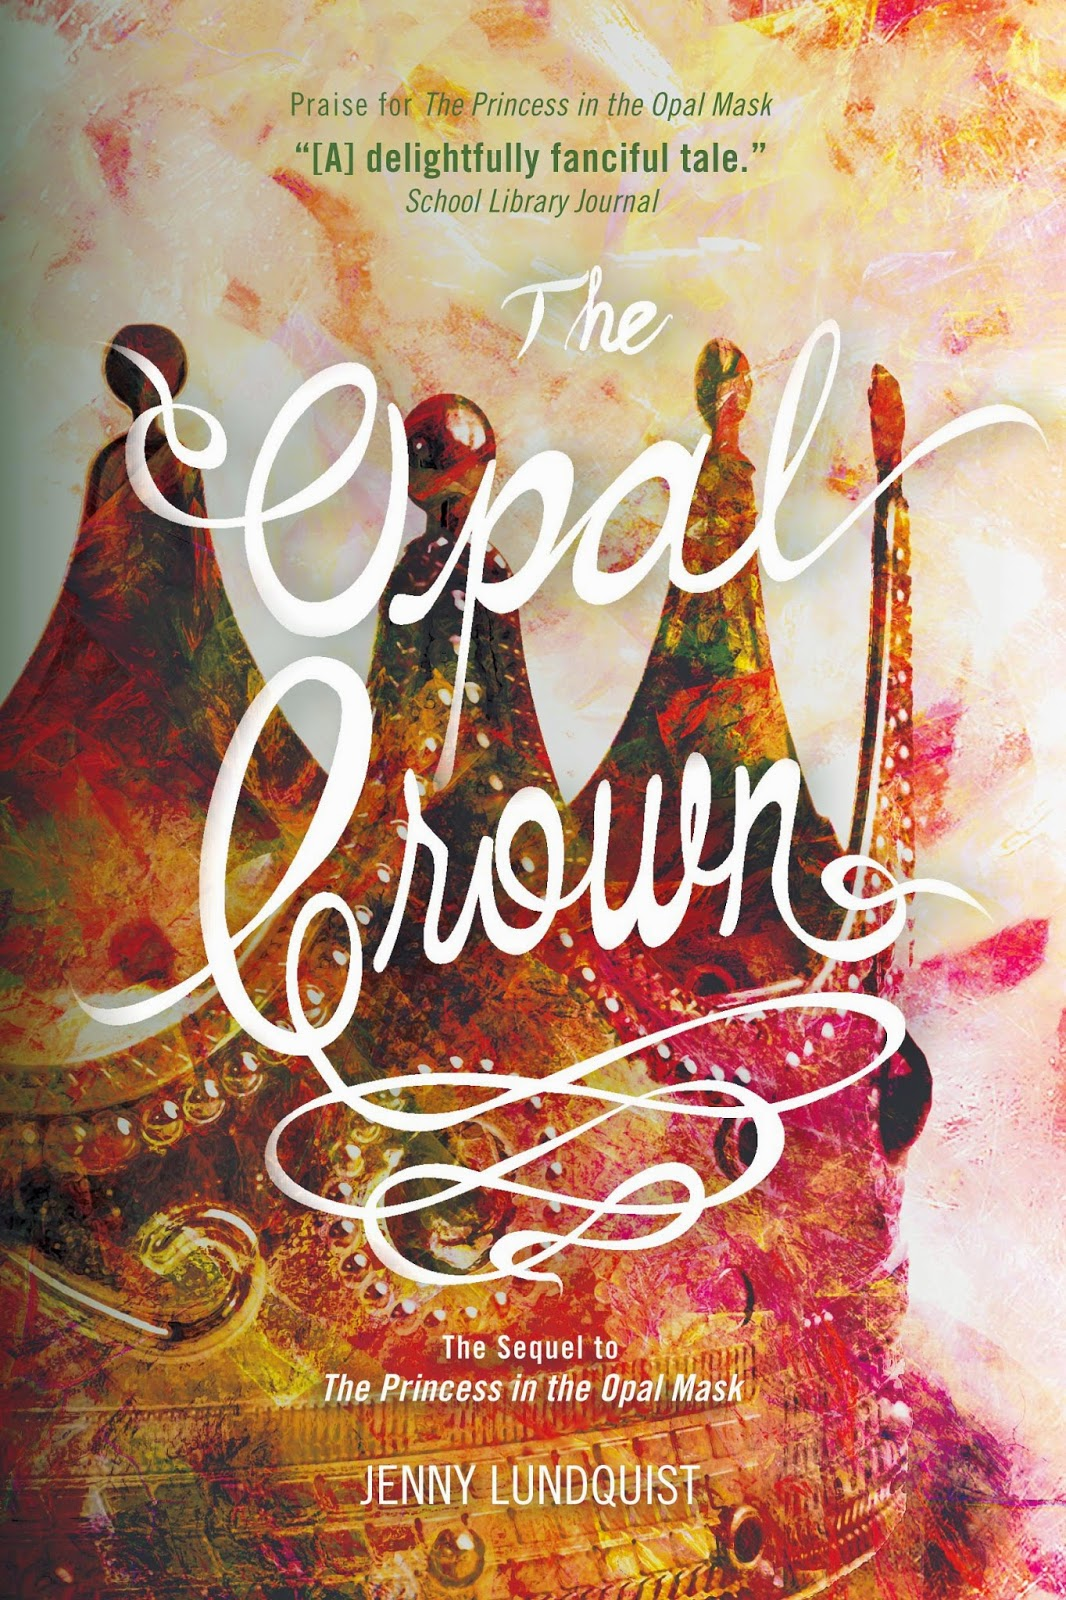 https://www.goodreads.com/book/show/20821473-the-opal-crown?ac=1